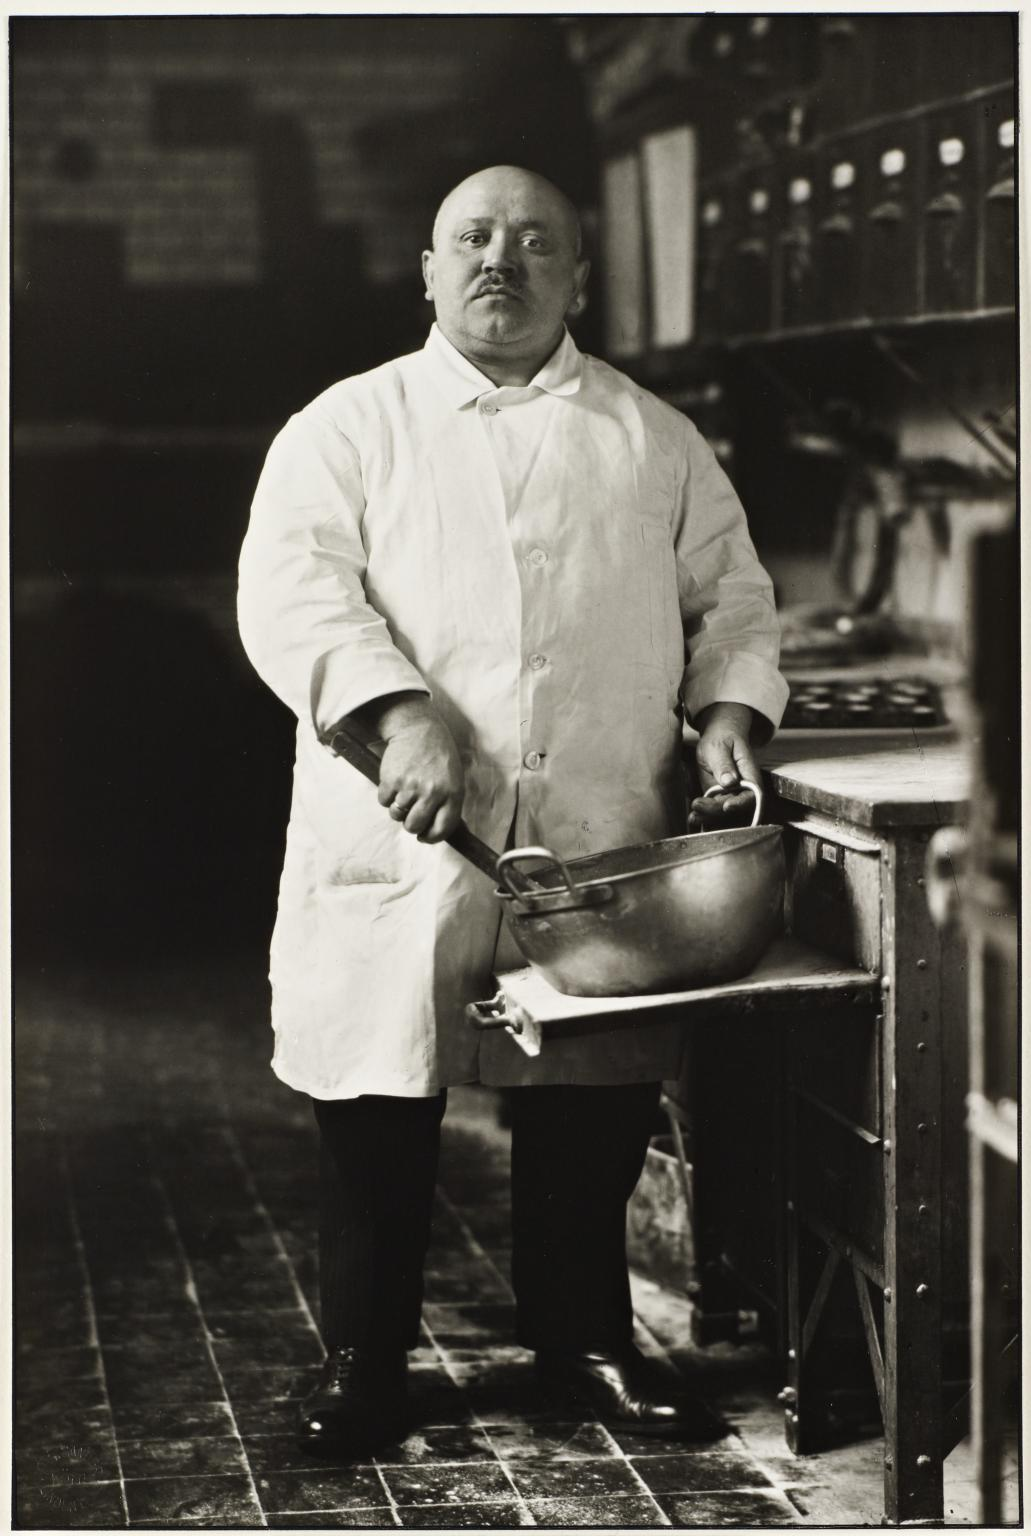 Pastrycook 1928, printed 1999 August Sander 1876-1964 ARTIST ROOMS  Tate and National Galleries of Scotland. Lent by Anthony d'Offay 2010 http://www.tate.org.uk/art/work/AL00033